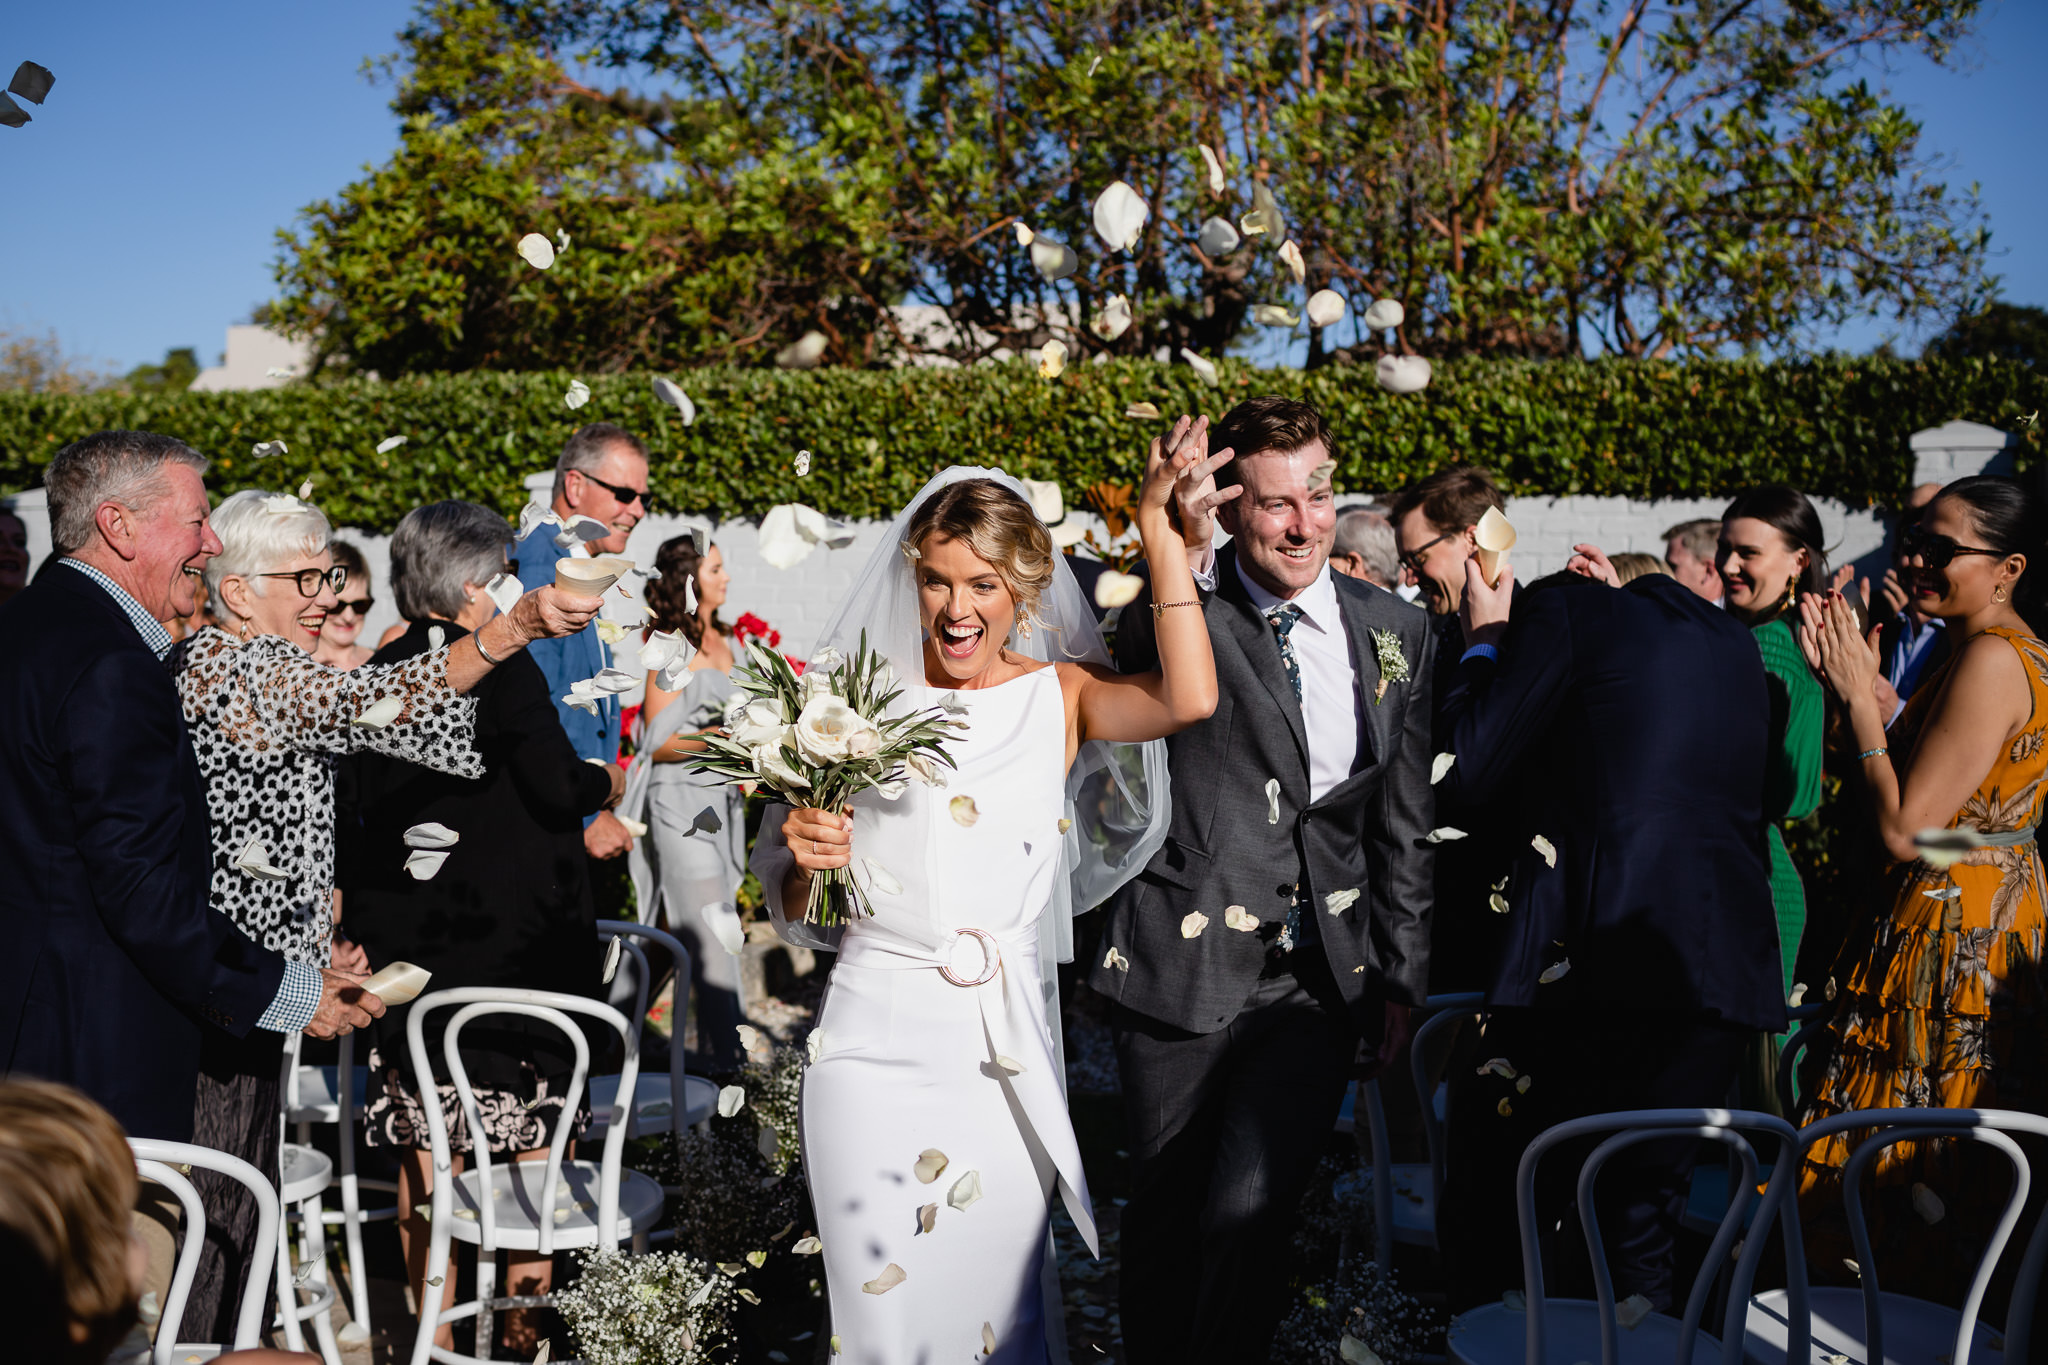 Bride and groom laughing and smiling as guests throw white flower petals at them as they walk back down the aisle of their backyard wedding at her paren't house in Dalkeith, Western Australia